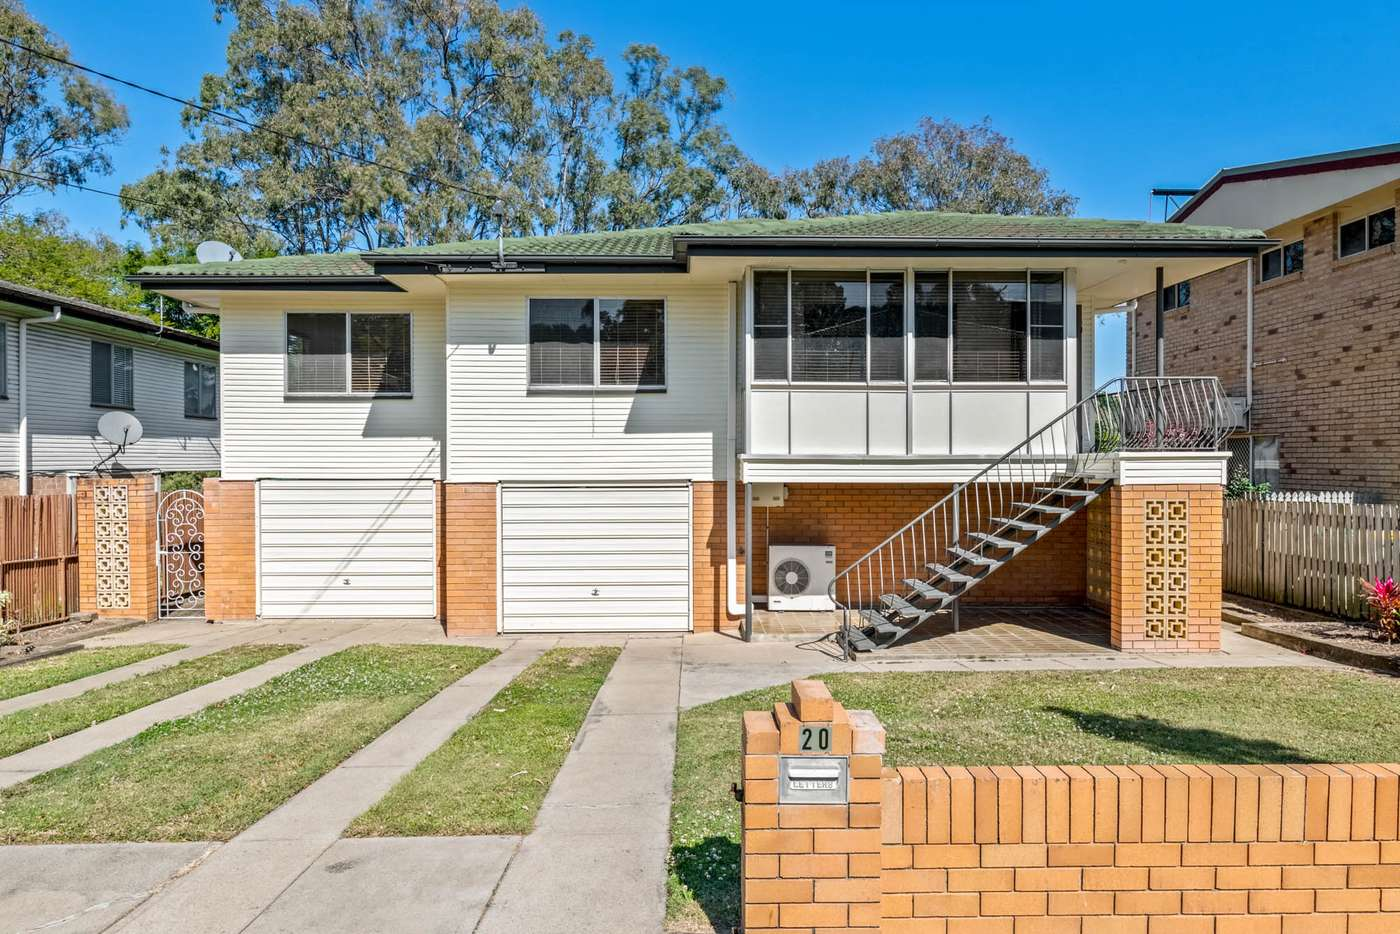 Main view of Homely house listing, 20 Joachim Street, Holland Park West QLD 4121